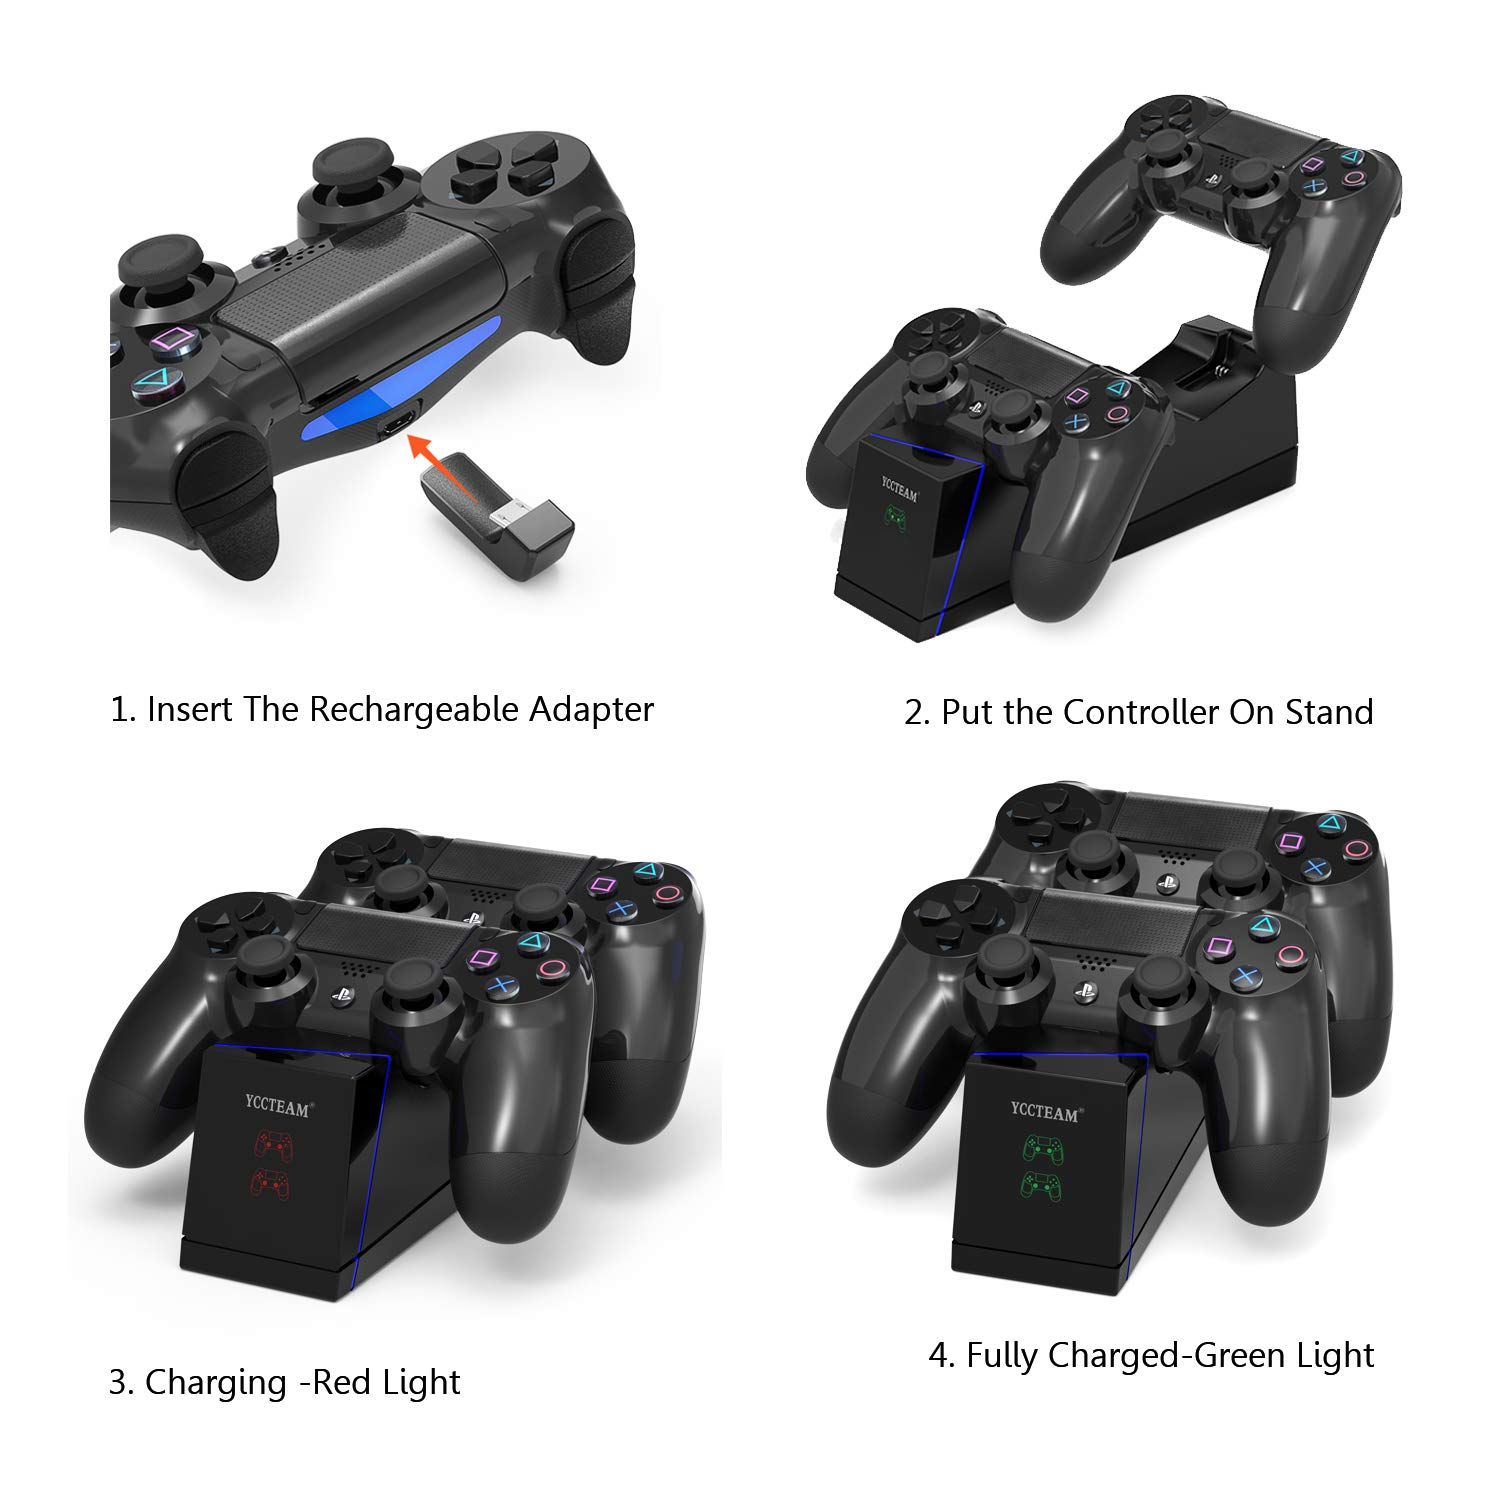 PS4 Controller Charger, DualShock 4 PS4 Controller USB Charging Station Dock, Playstation 4 Charging Station for Sony Playstation4 / PS4 / PS4 Slim / PS4 Pro Controller